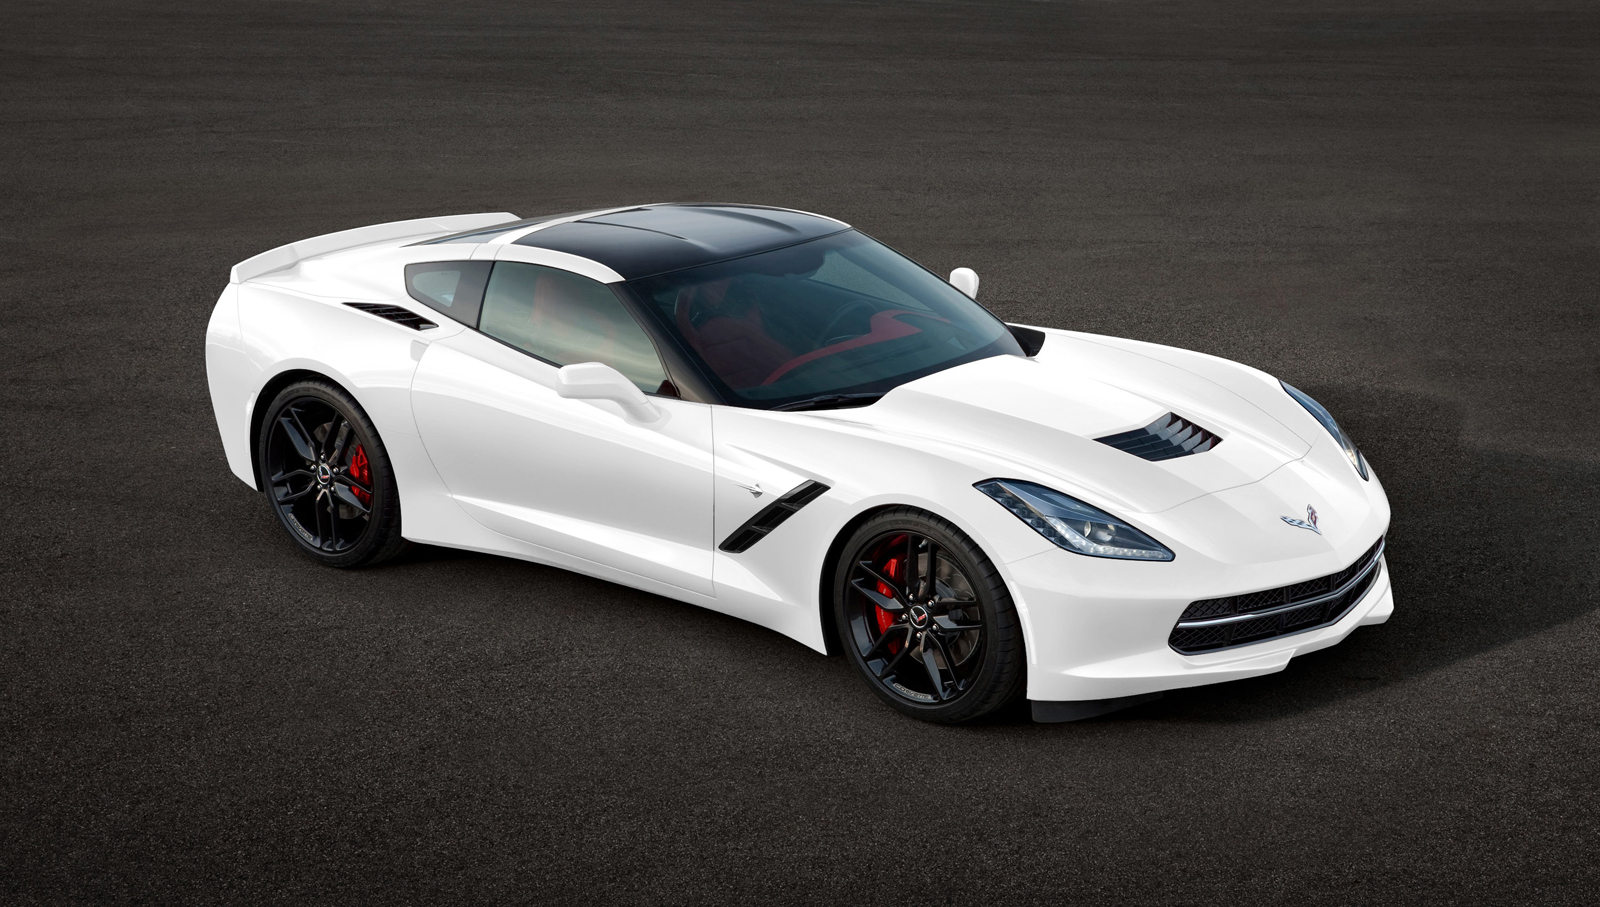 Chevrolet Corvette Stingray #3